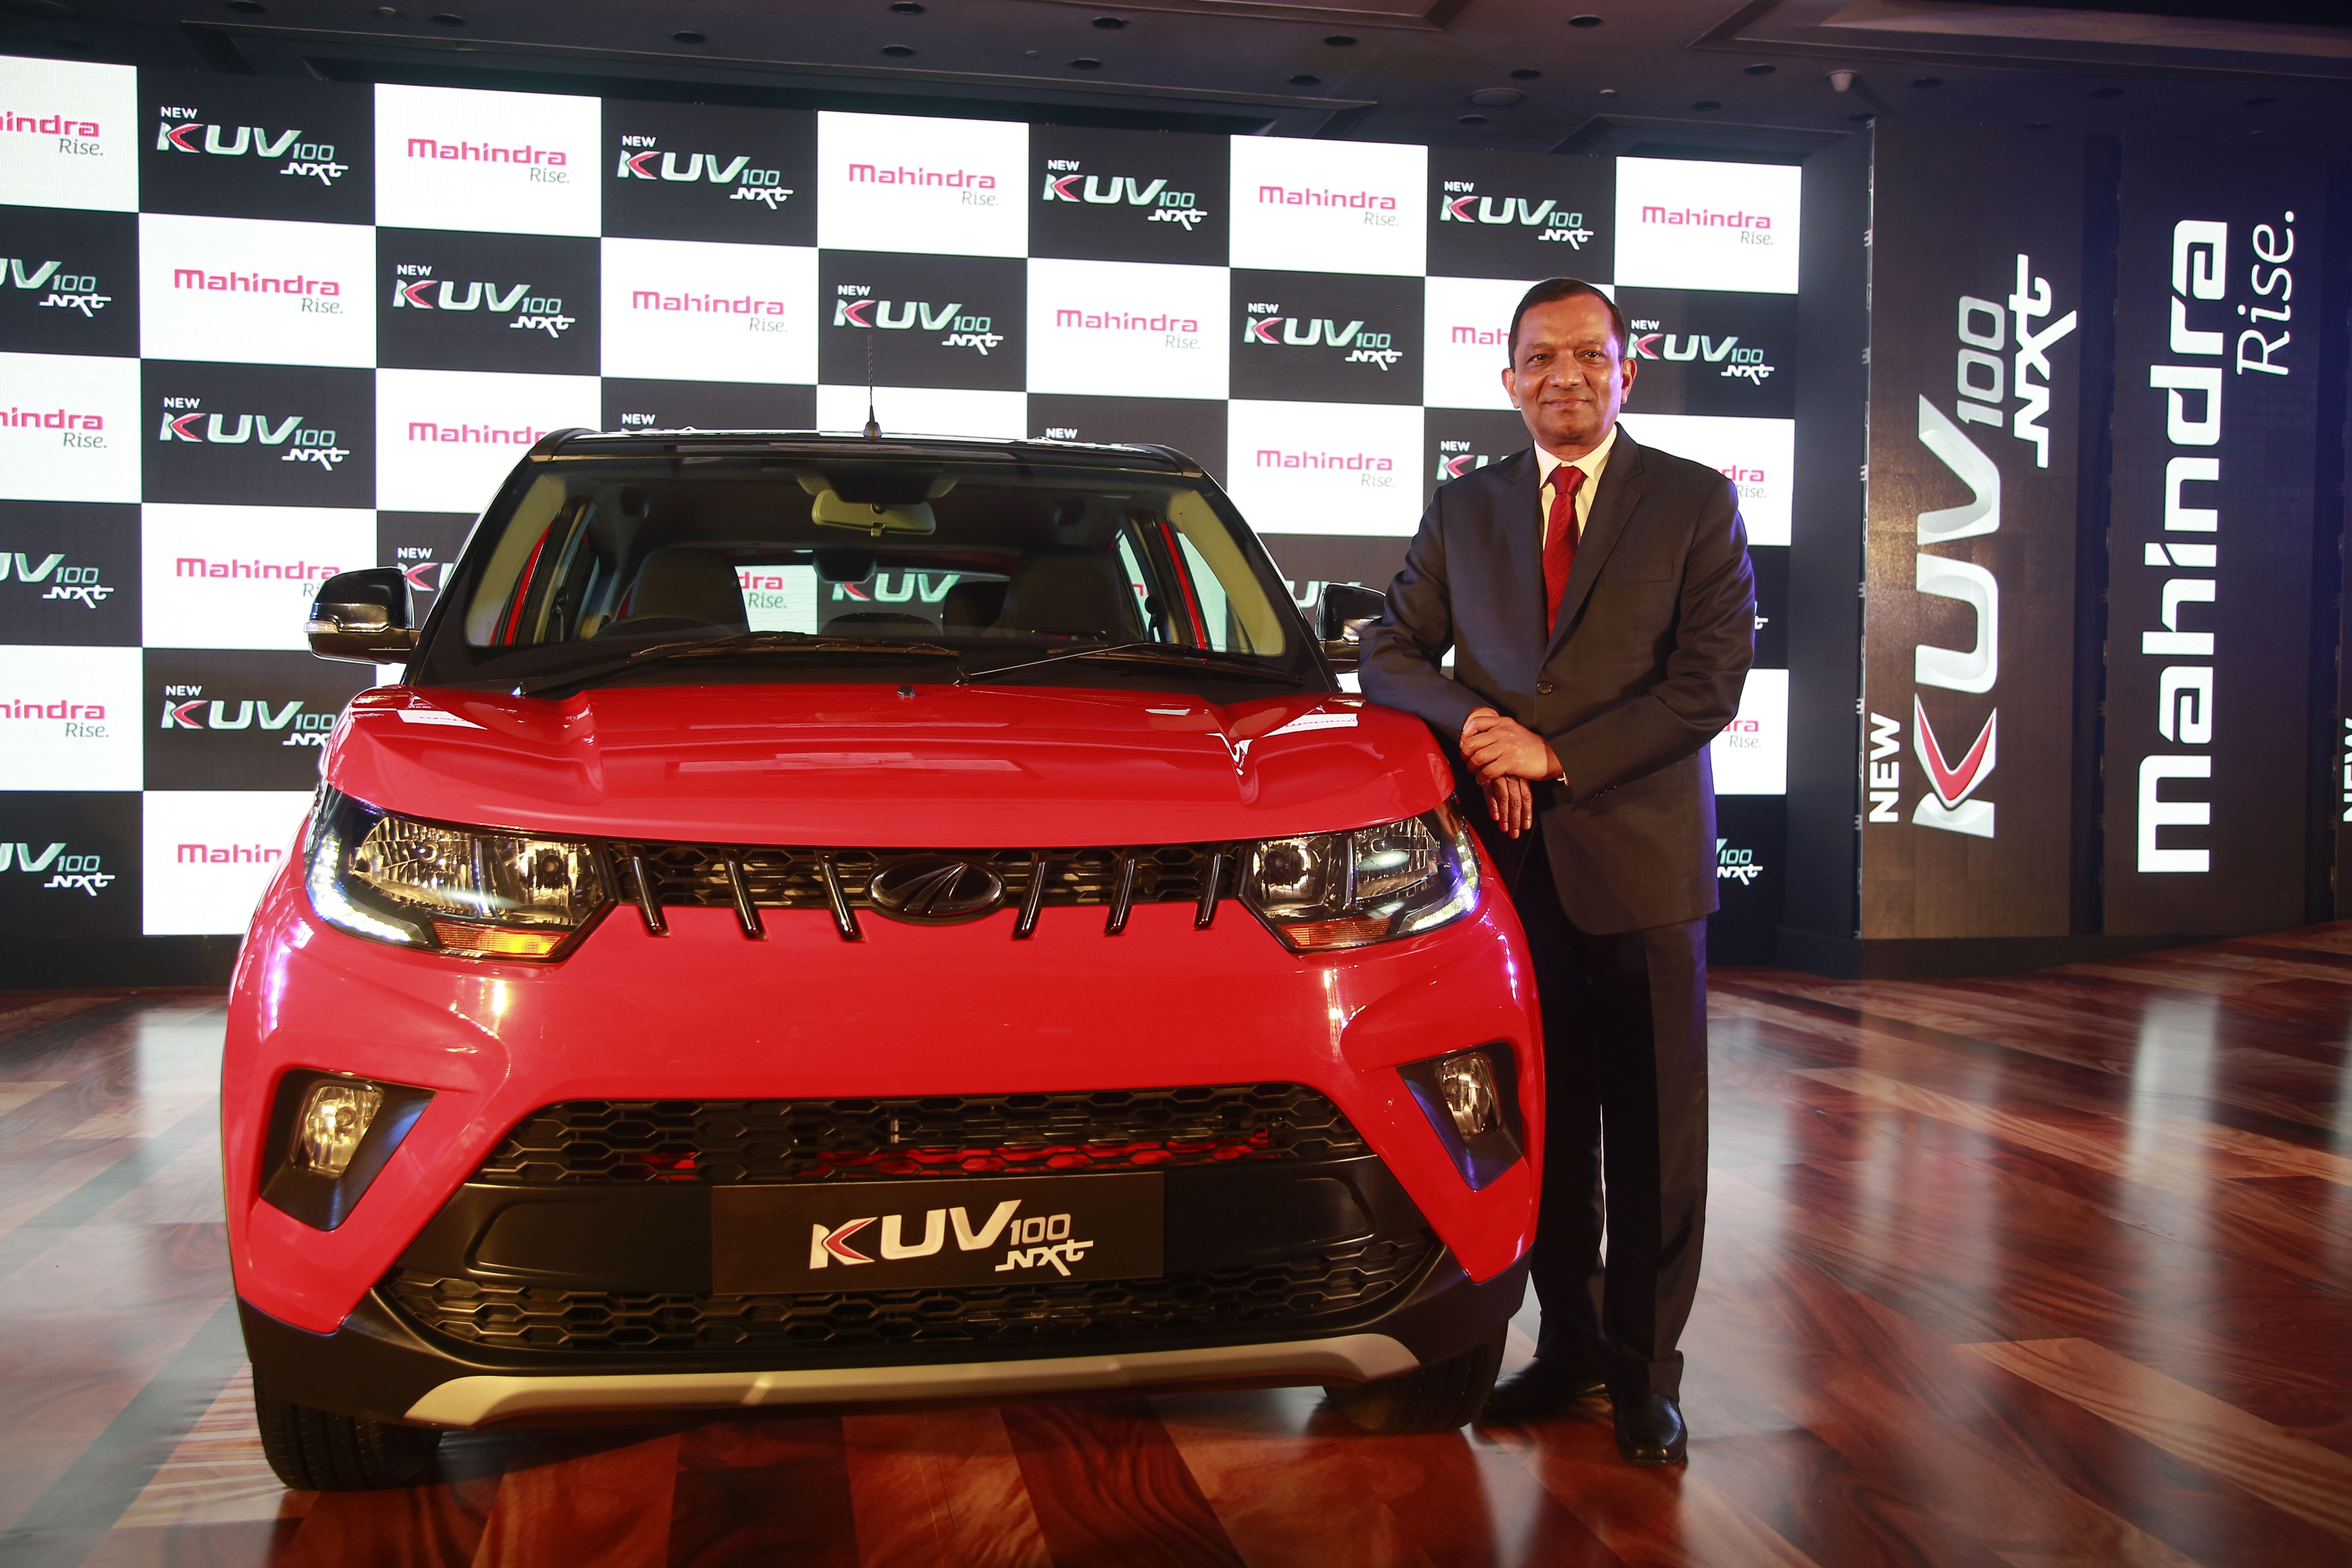 Mahindra launched the KUV NXT in the mini SUV segment. The KUV went for a facelift faster than any of Mahindra's other models